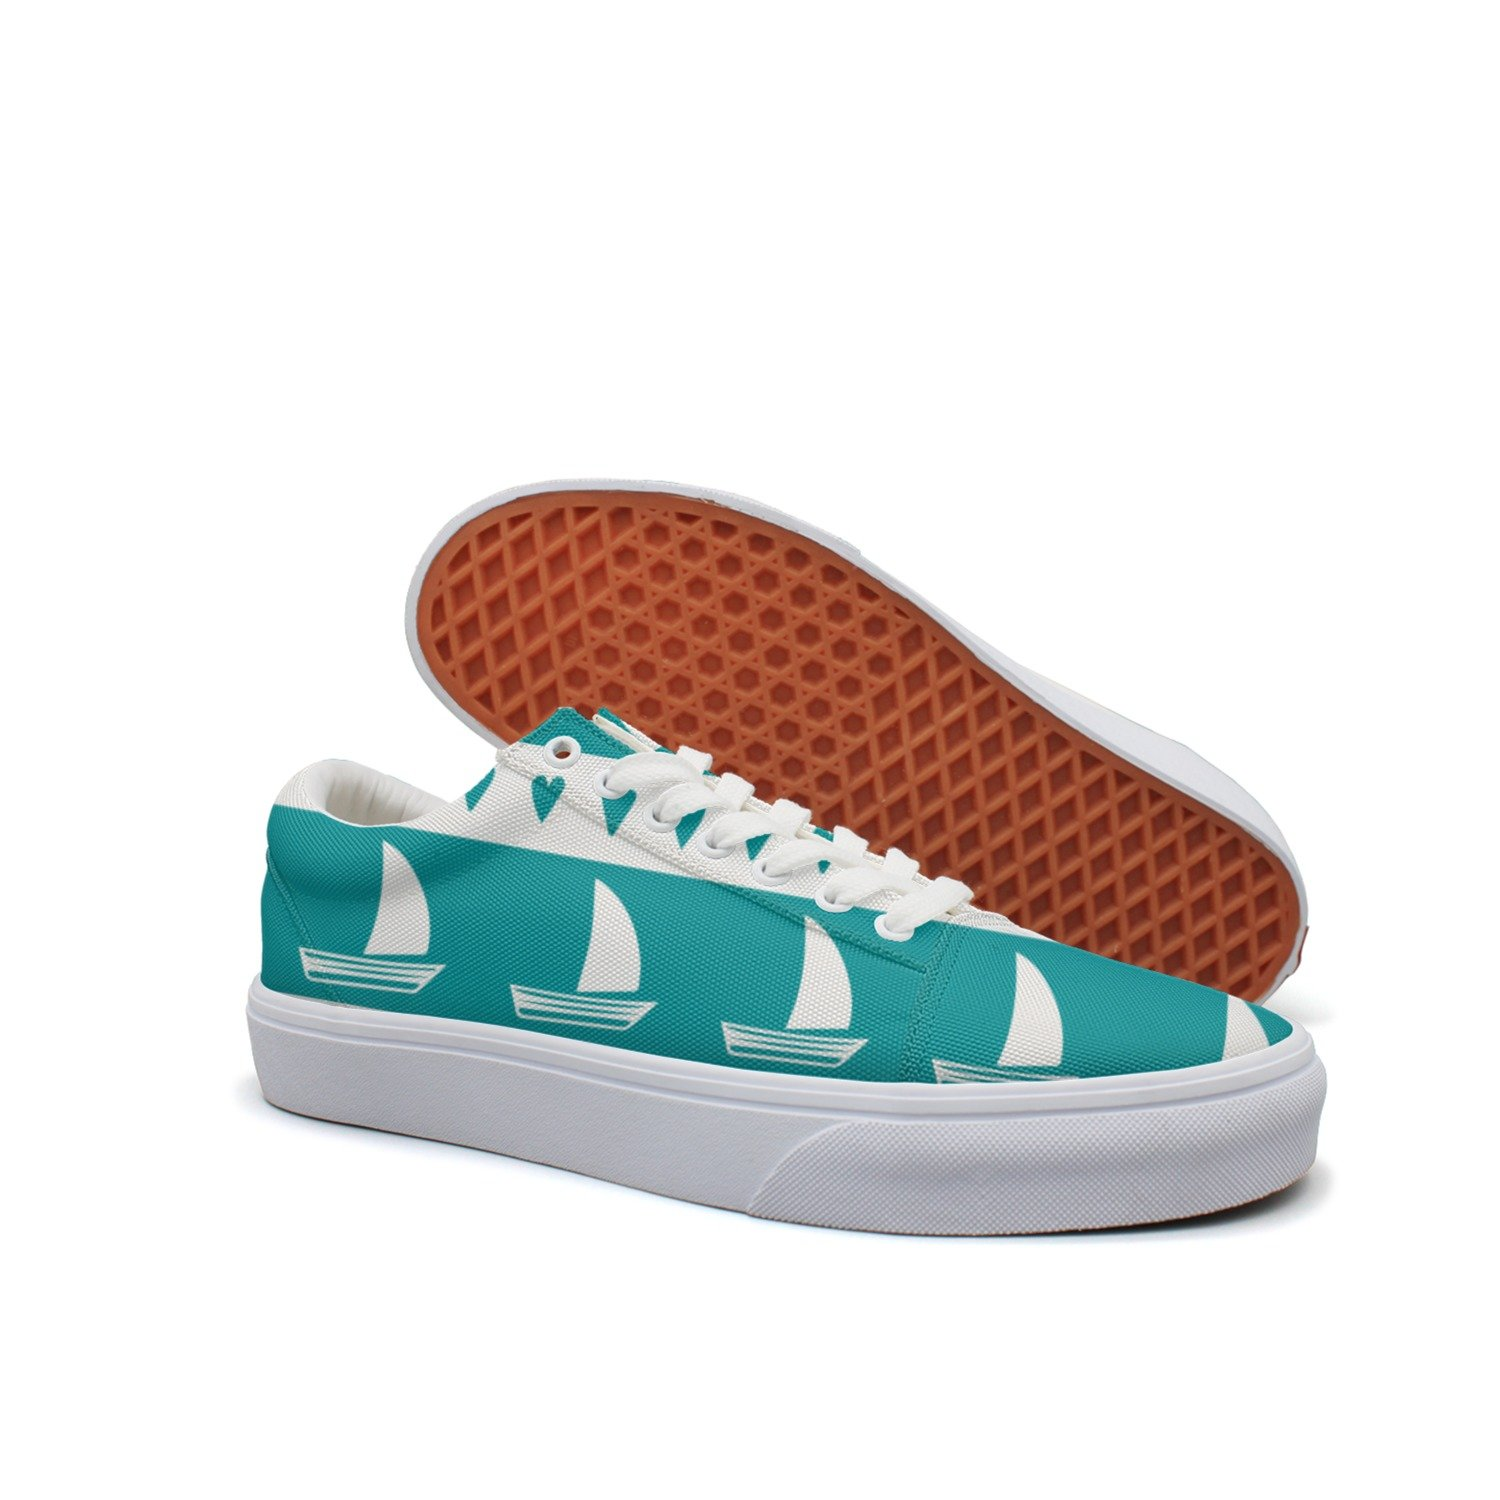 VCERTHDF Print Trendy Anchor Sailboat Hear Low Top Canvas Sneakers